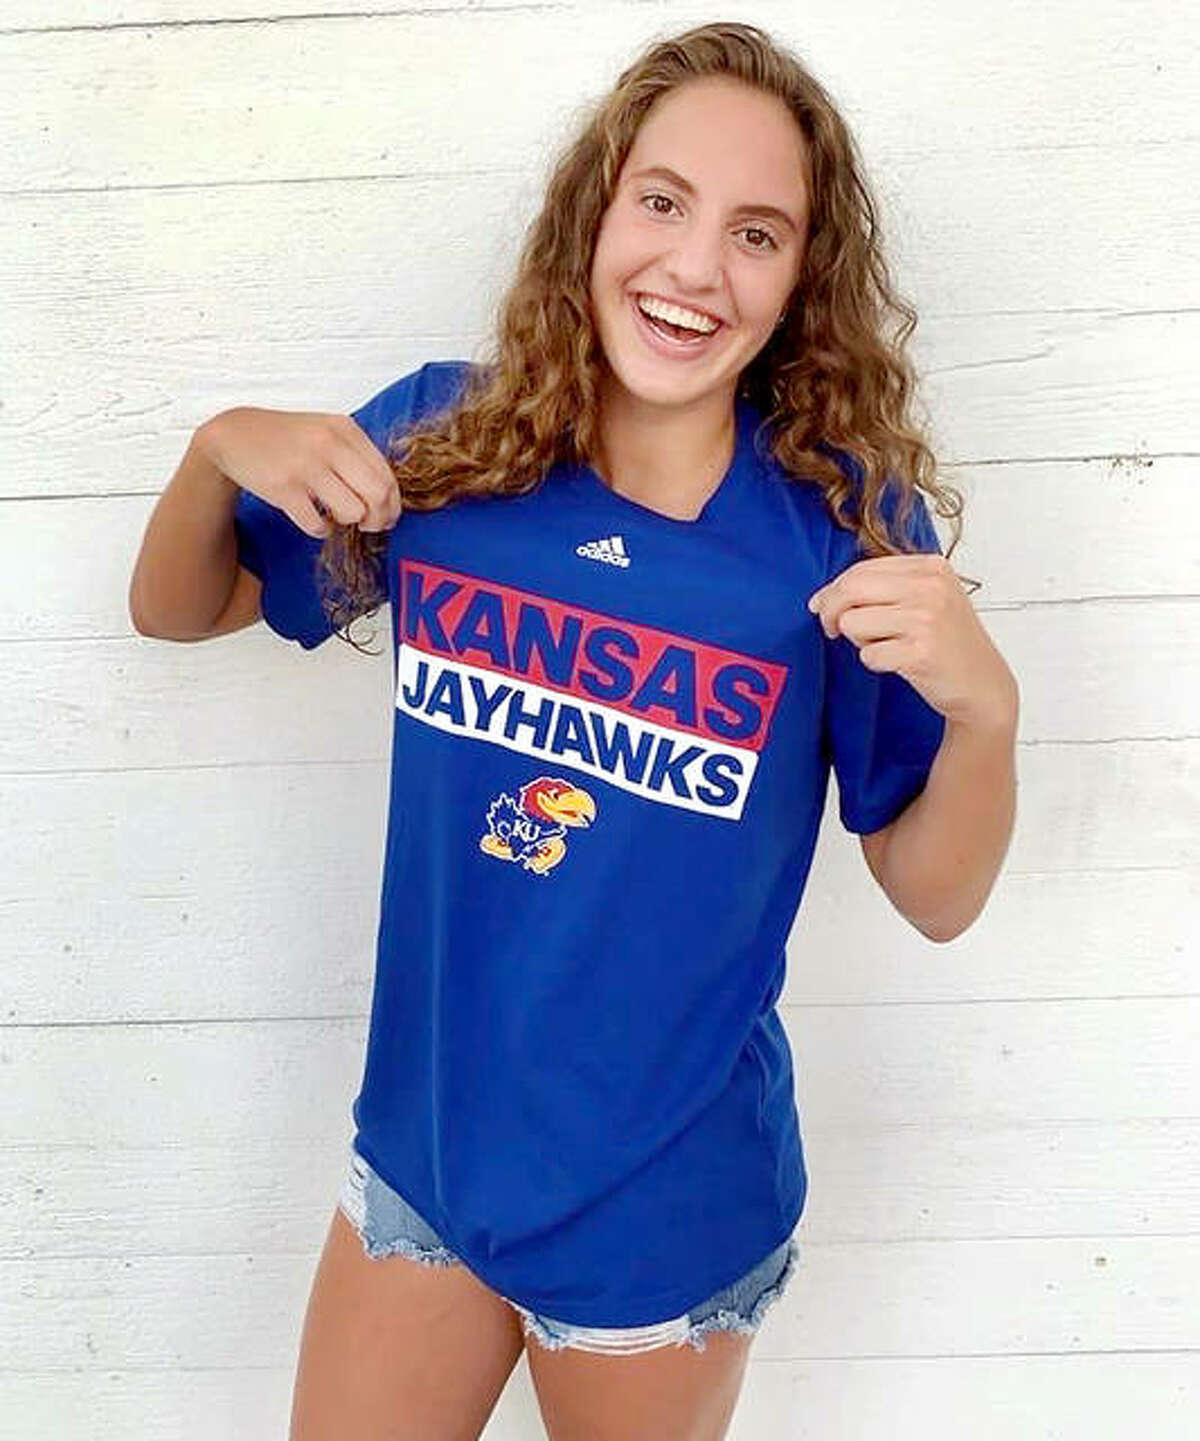 Eleni Kotzamanis, a senior at Alton High,has been named a Scholastic All-American by USA Swimming. The Alton High senior displays her college colors after making a verbal commitment to swim at the University of Kansas next year. Kotzamanis swims for the Flyers Aquatic Swim Team of St. Louis.